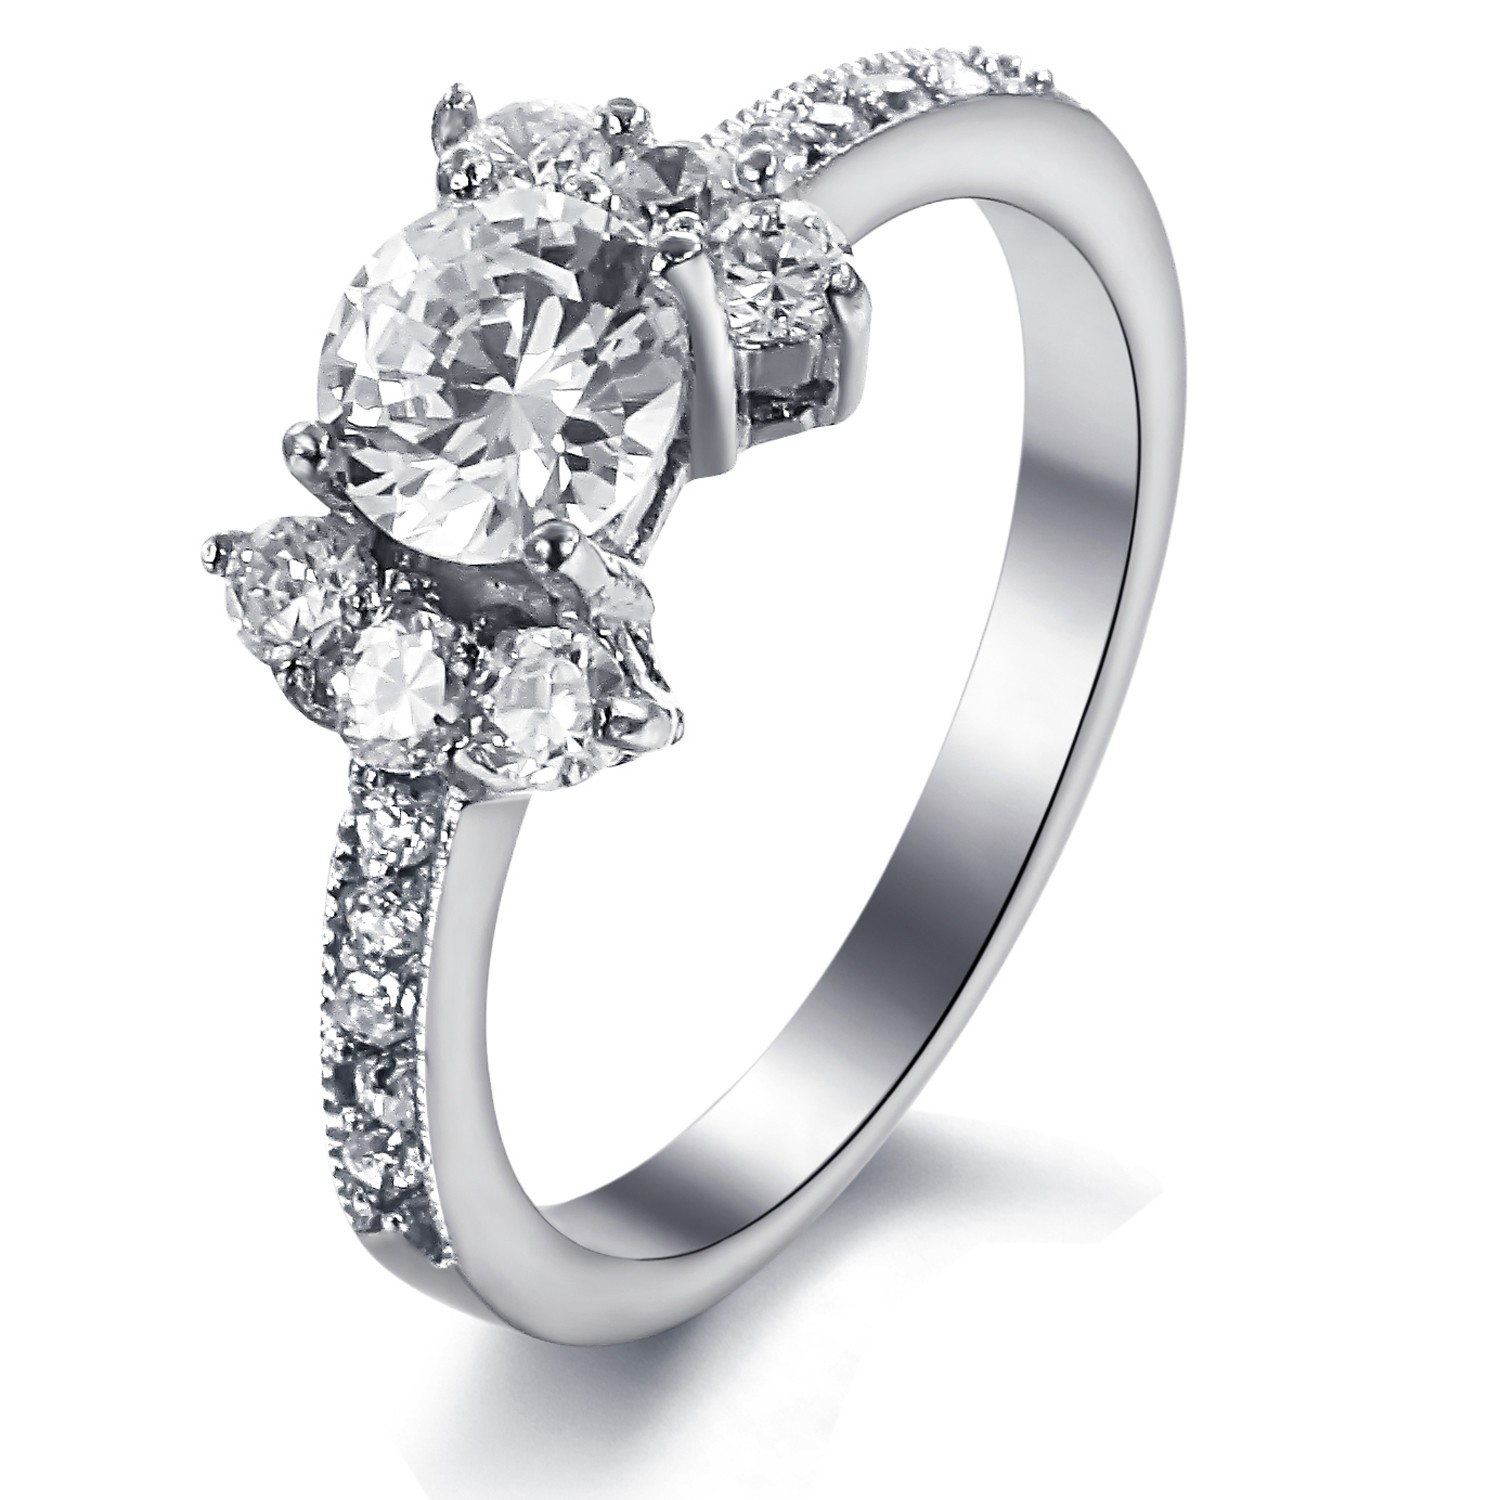 Stainless Steel Diamond Engagement Rings Diamond Engagement Rings